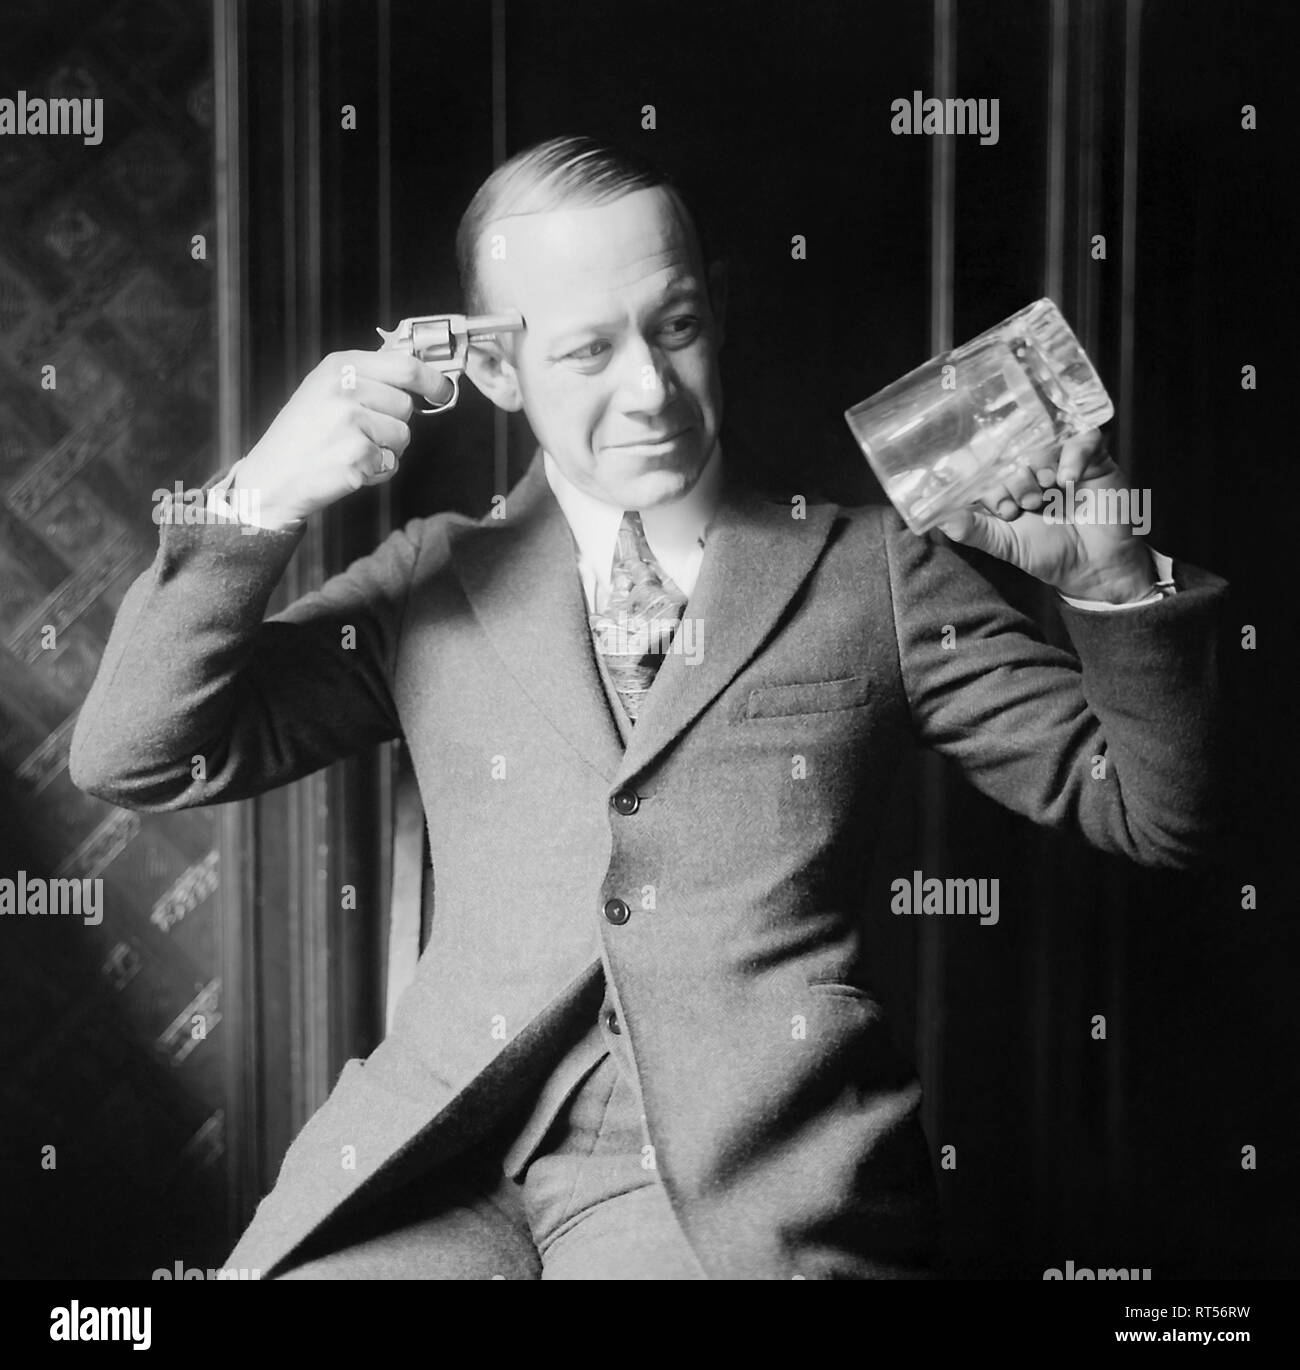 Ernie Hare holding an empty mug and a pistol against his head, displaying his distaste for prohibition laws. - Stock Image